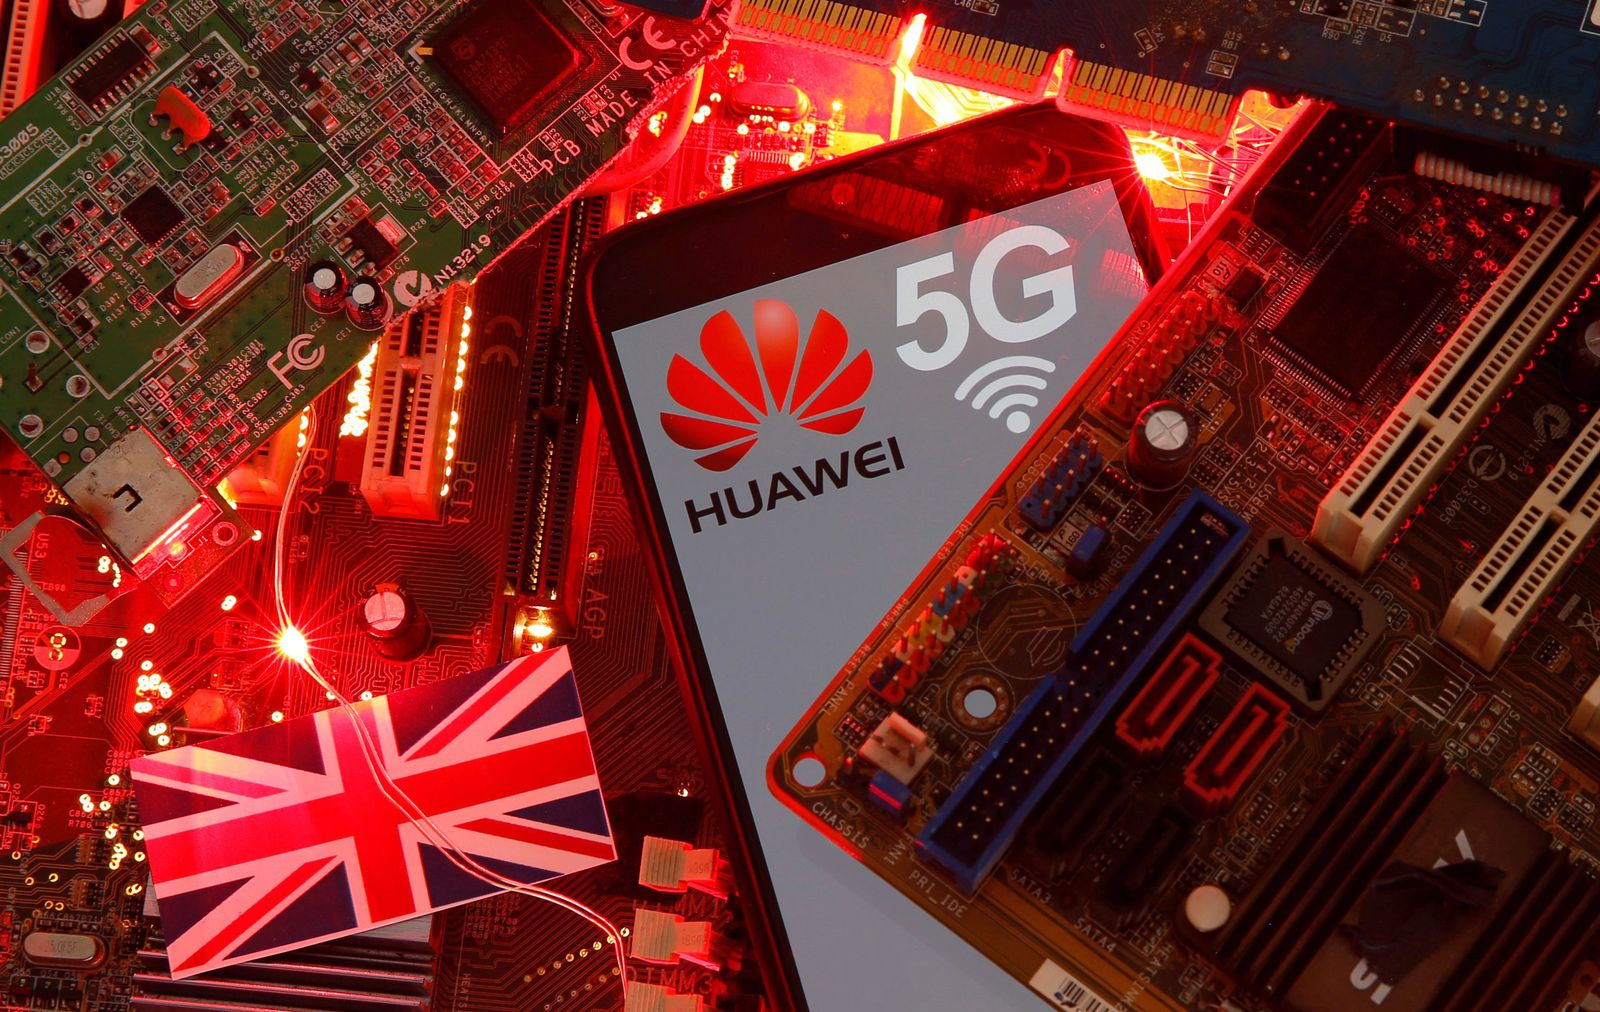 The British flag and a smartphone with a Huawei and 5G network logo are seen on a PC motherboard in this illustration